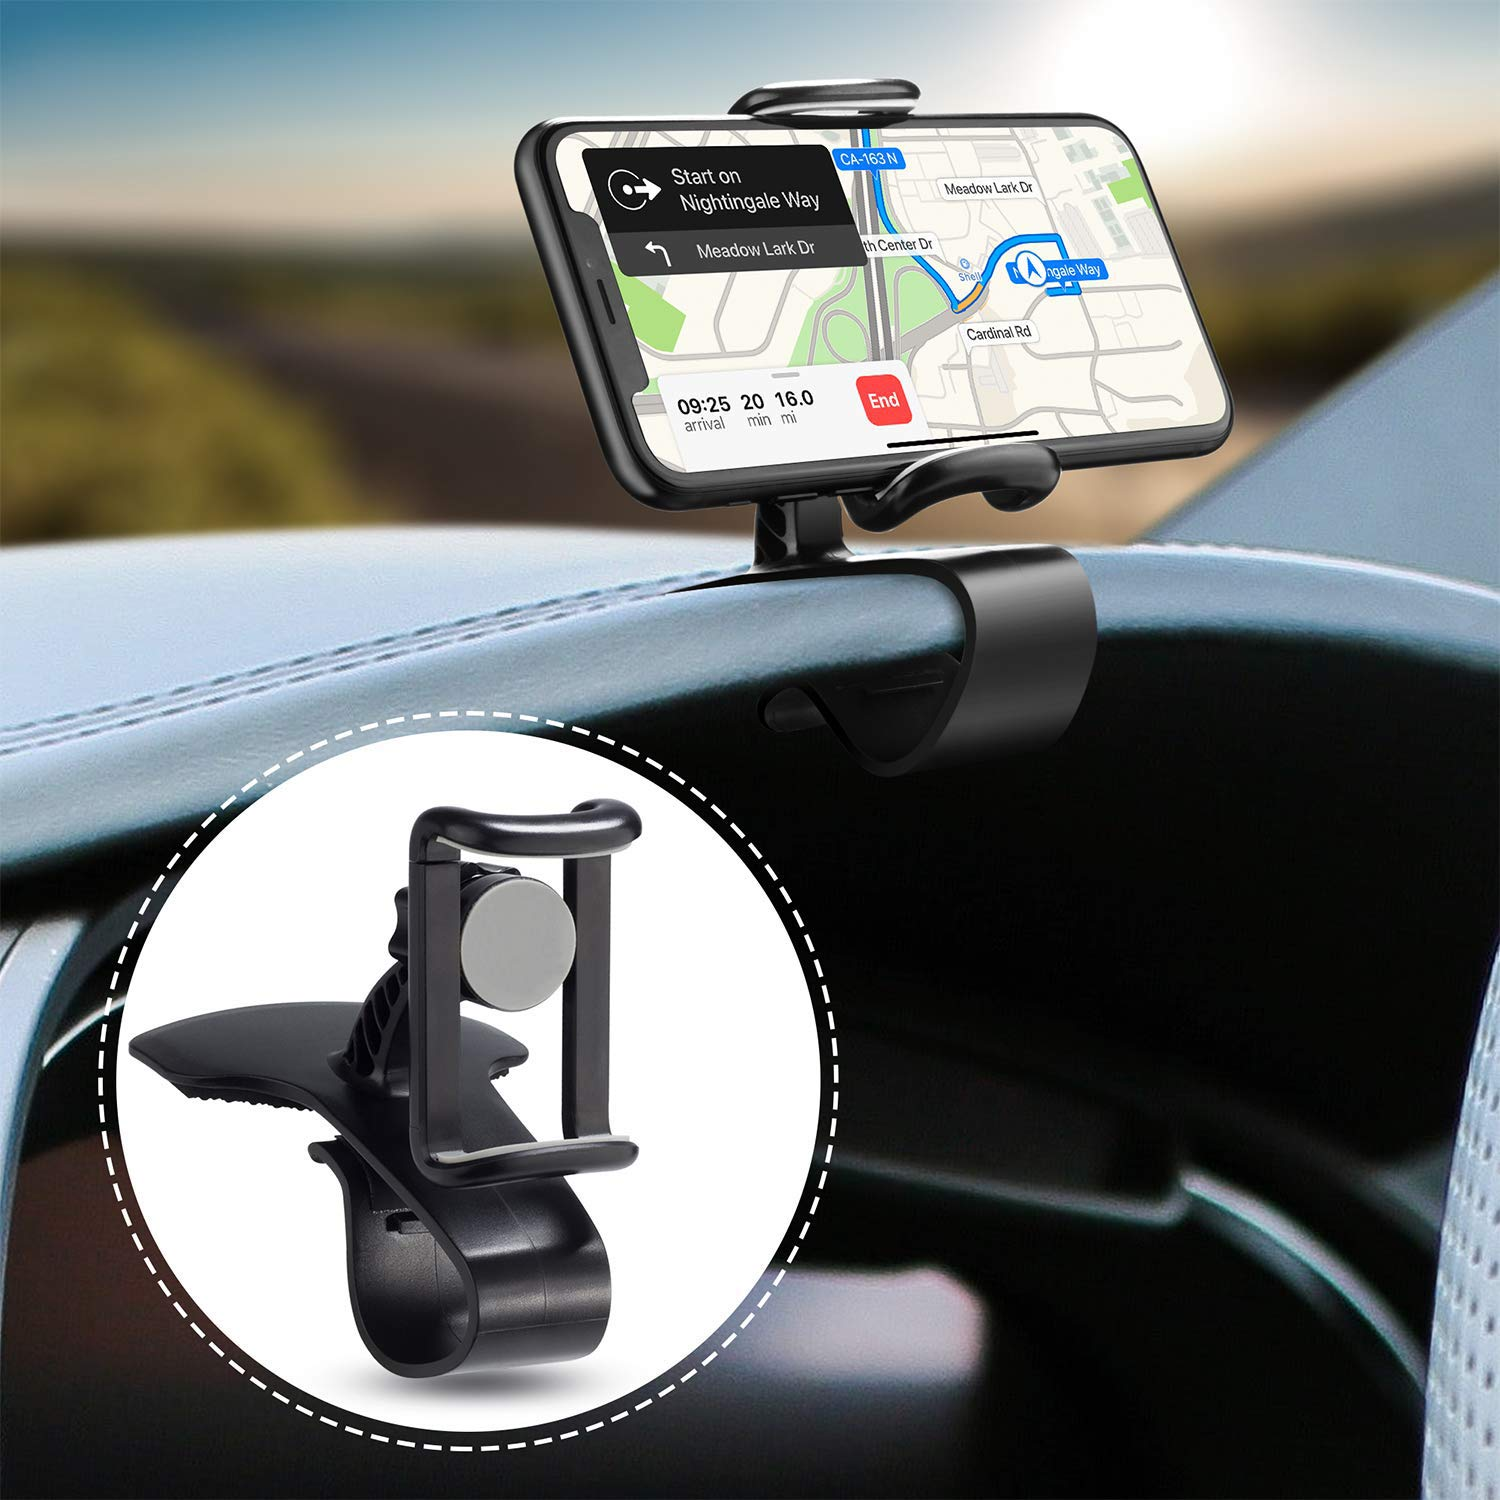 Car Phone Mount, 2 in 1 Universal Cell Phone Holder Car Air Vent Holder Dashboard Mount for iPhone Xs Max X 8 Plus 7 Plus 6S Samsung Galaxy S10 S9 S8 Edge S7 Note 9 Pixel 3 LG Nexus V40 G7 Xperia XZ3